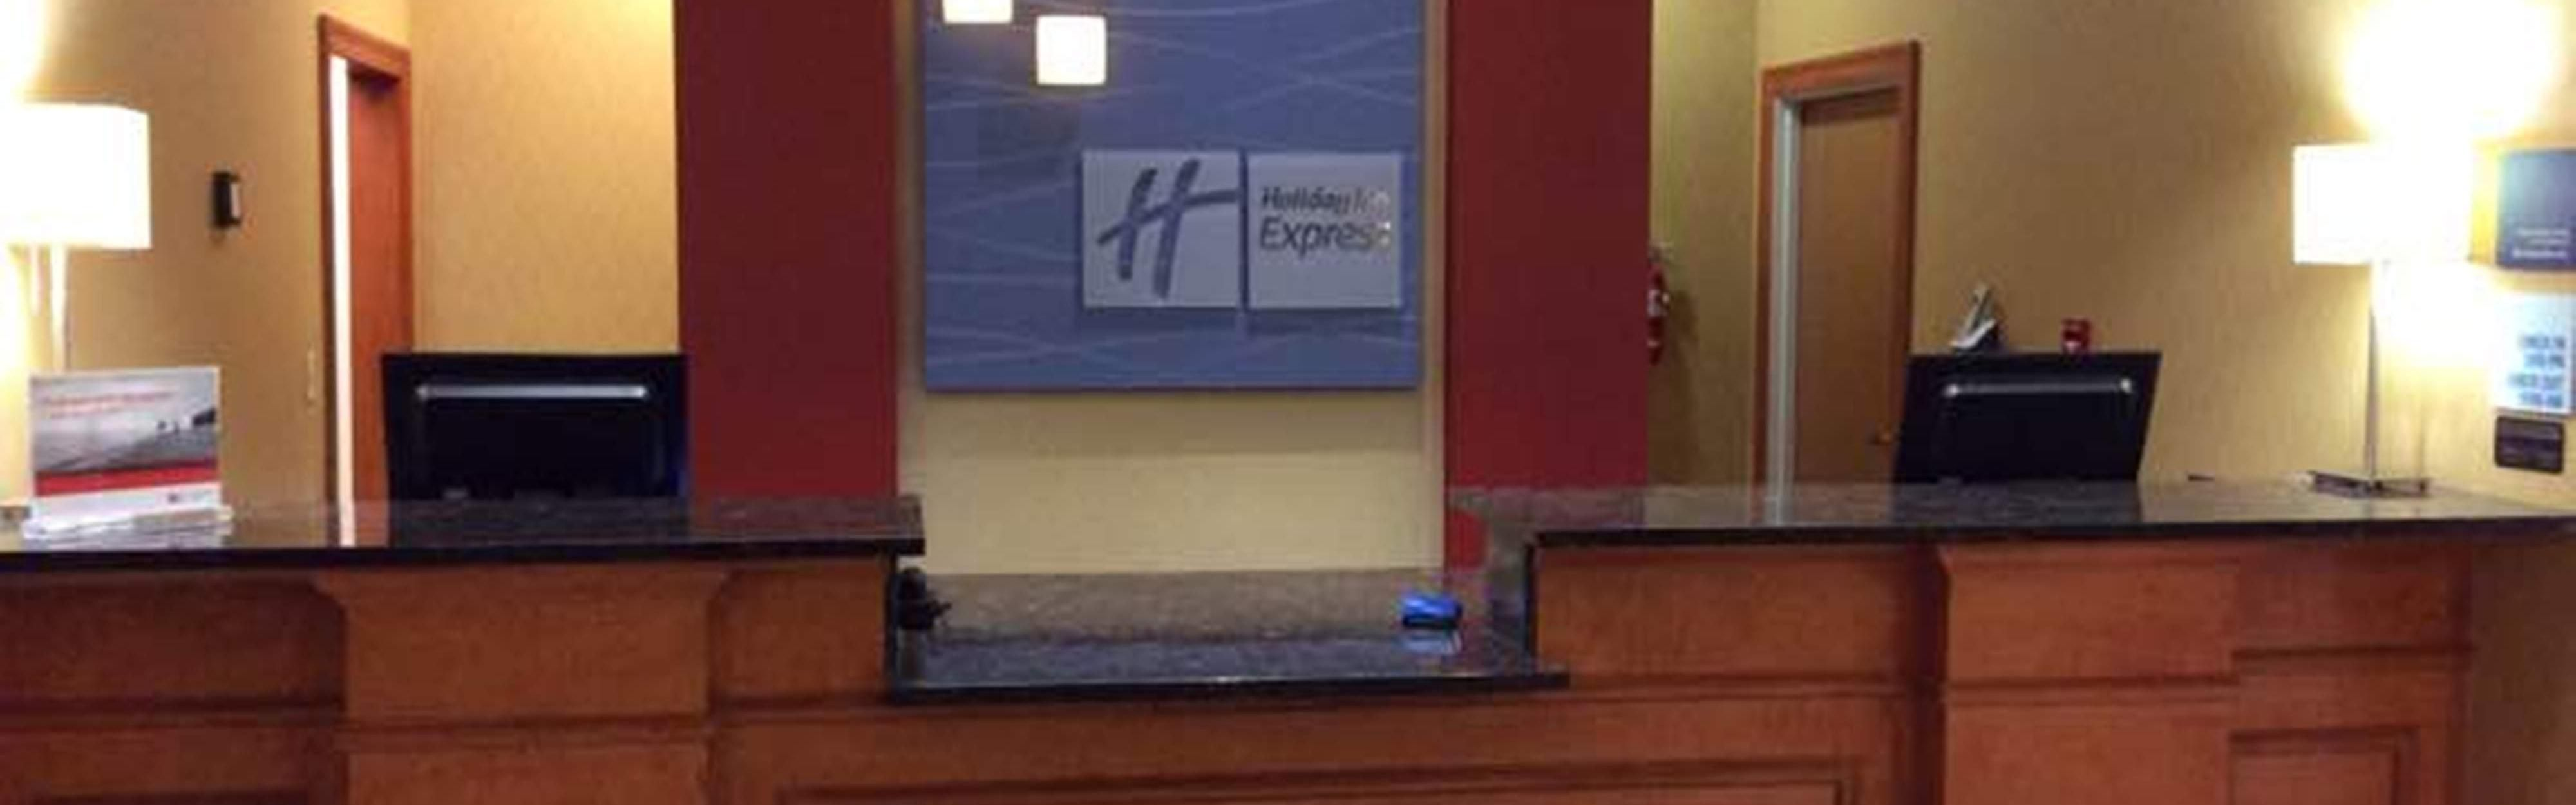 Holiday Inn Express & Suites Forest image 0